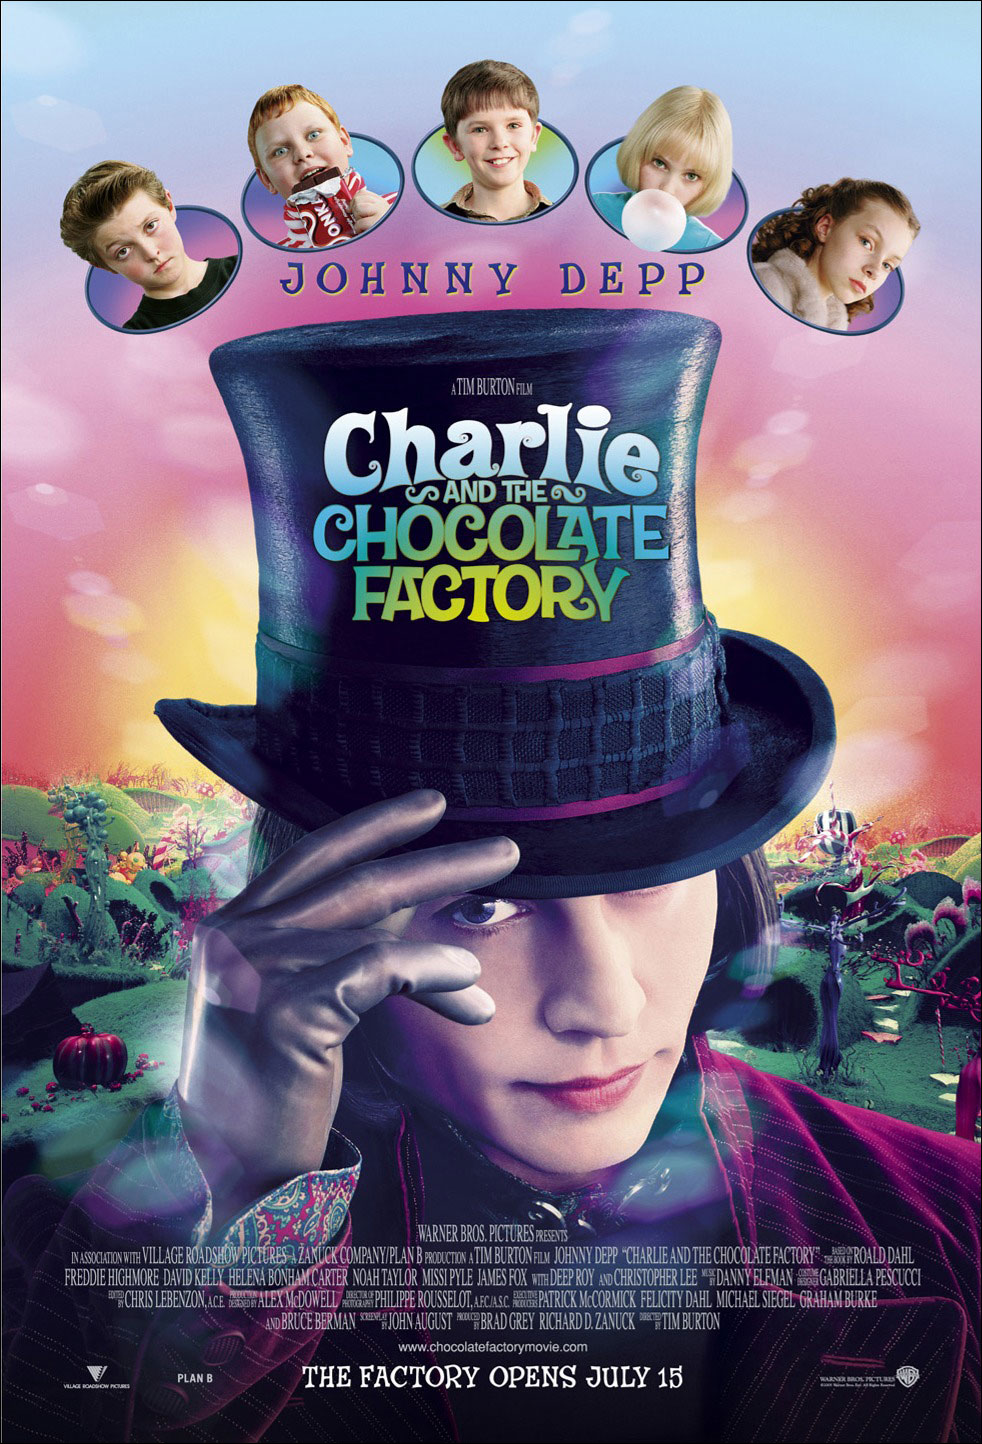 remakes reboots the sequel to the prequel of the new movie made charlie and the chocolate factory remake